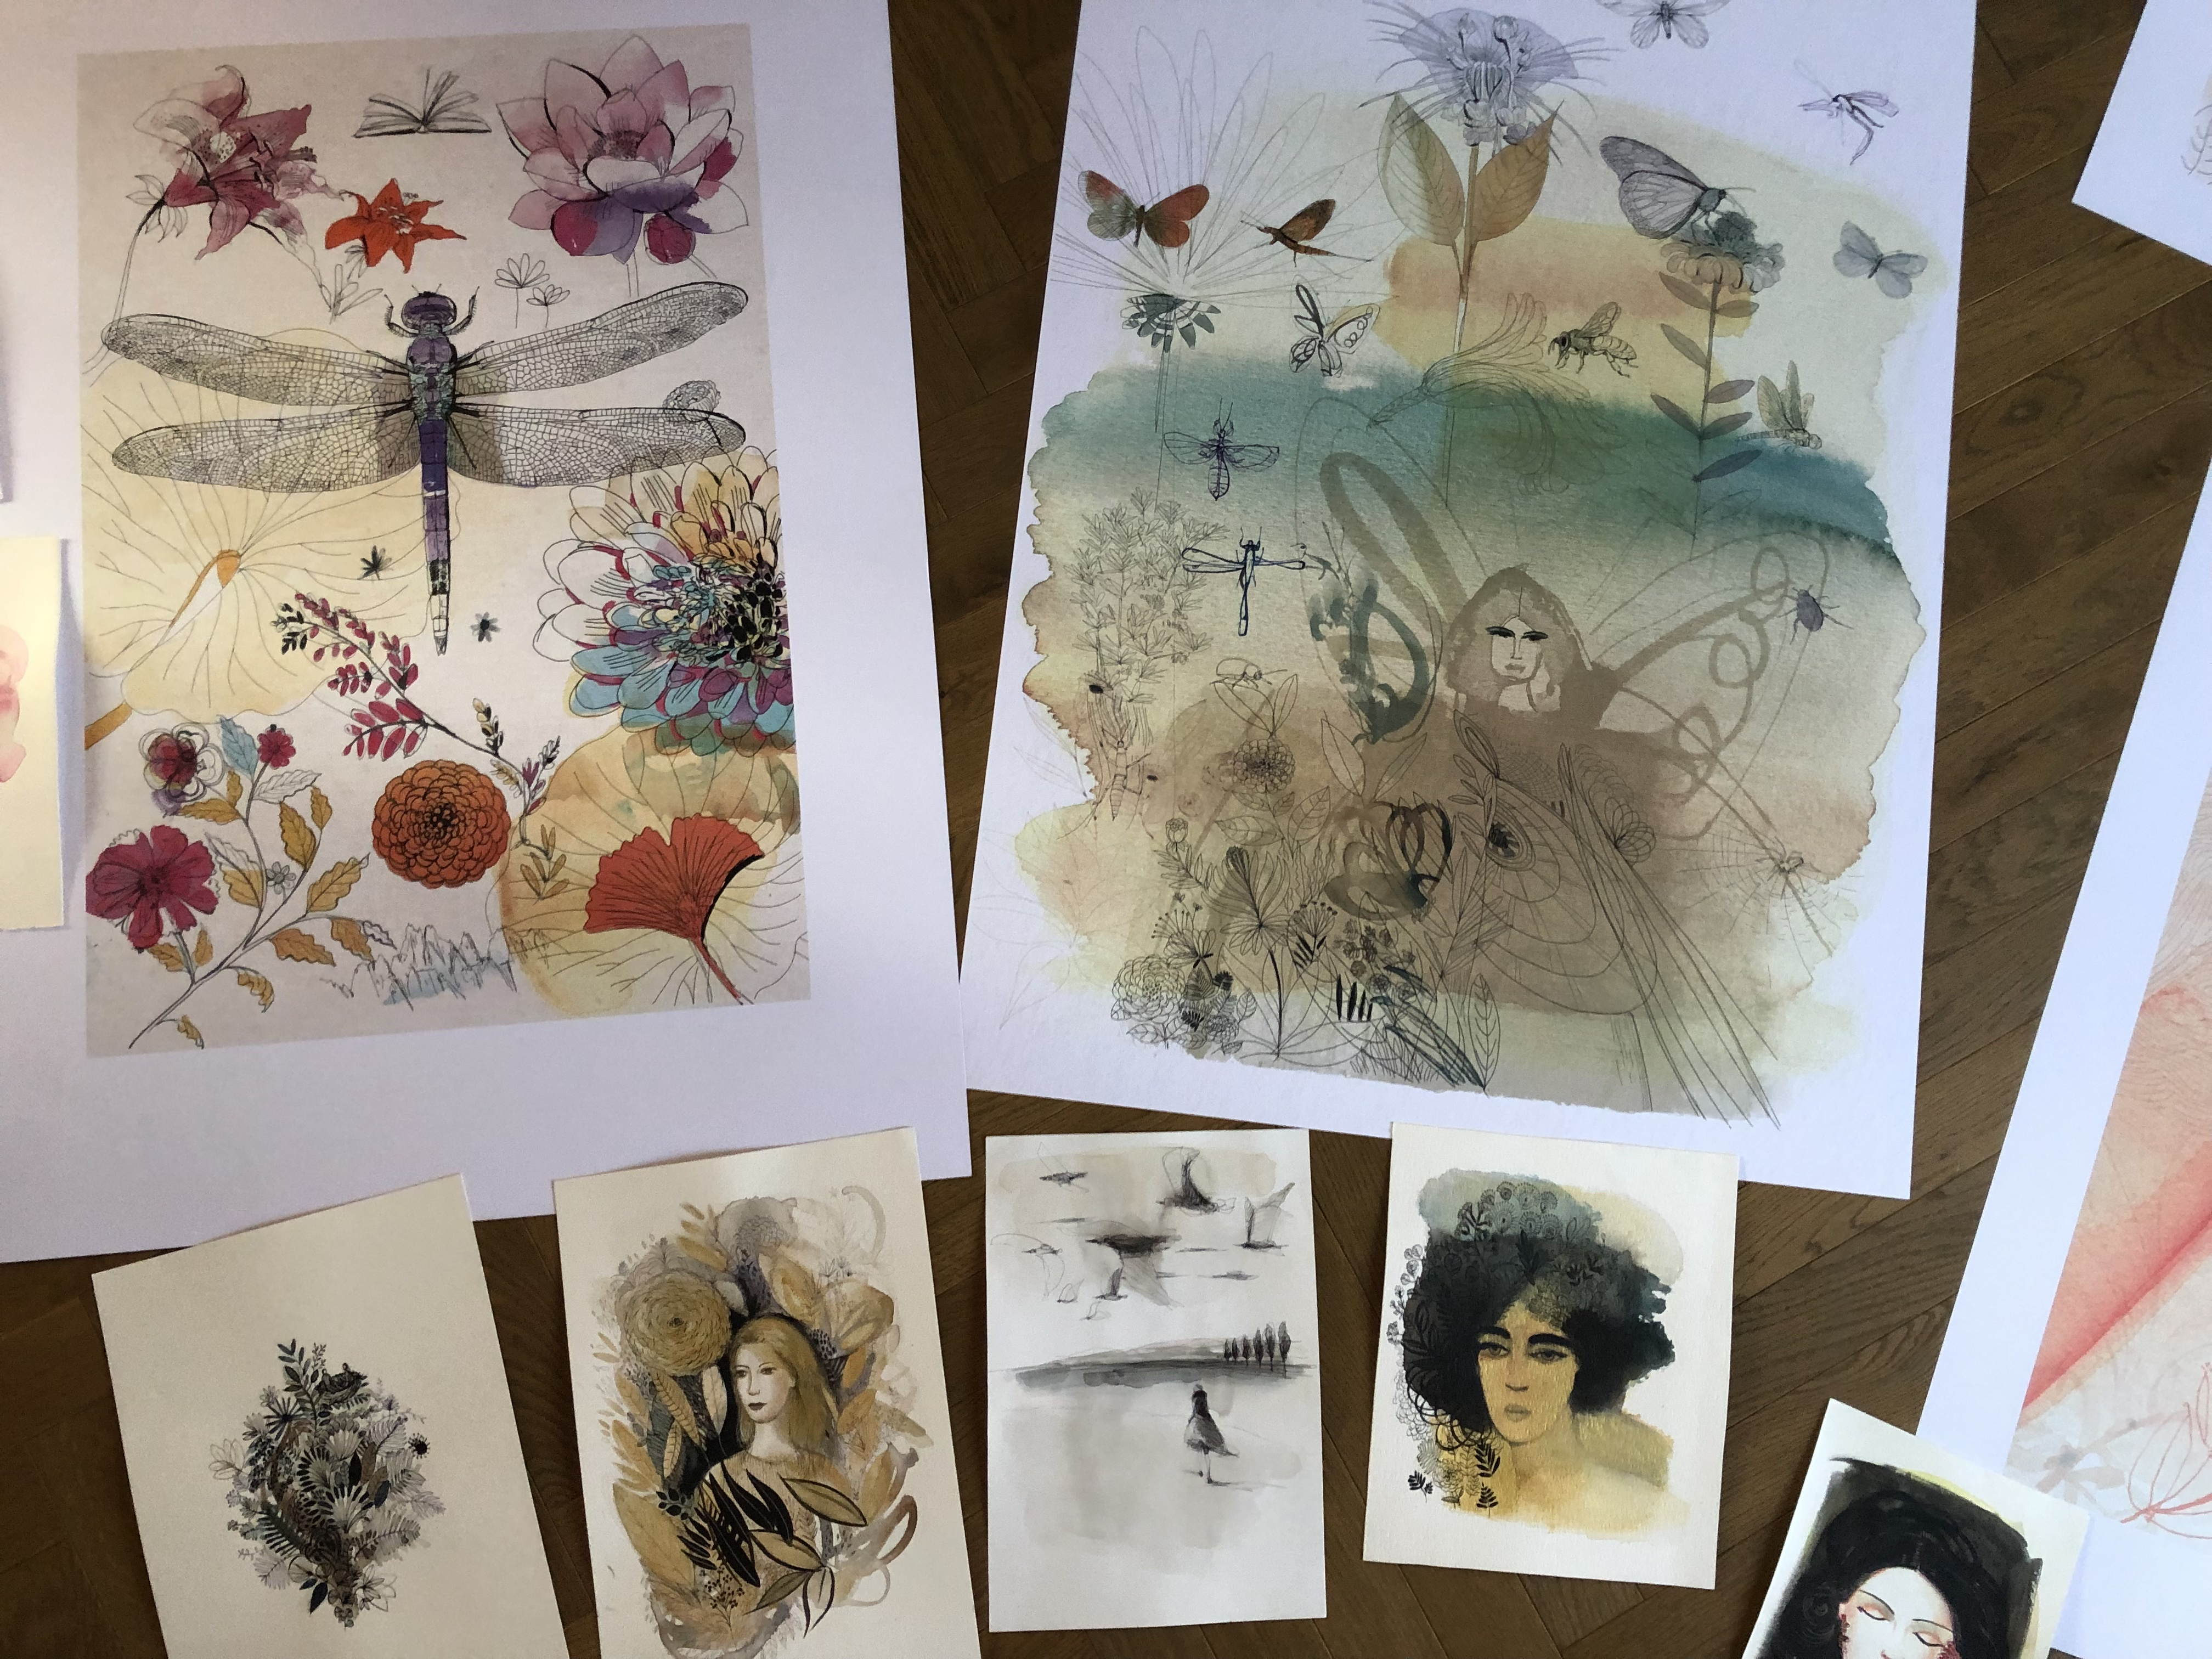 Watercolor fine art prints and hand made for an exhibition at HOOA Gallery in Milan